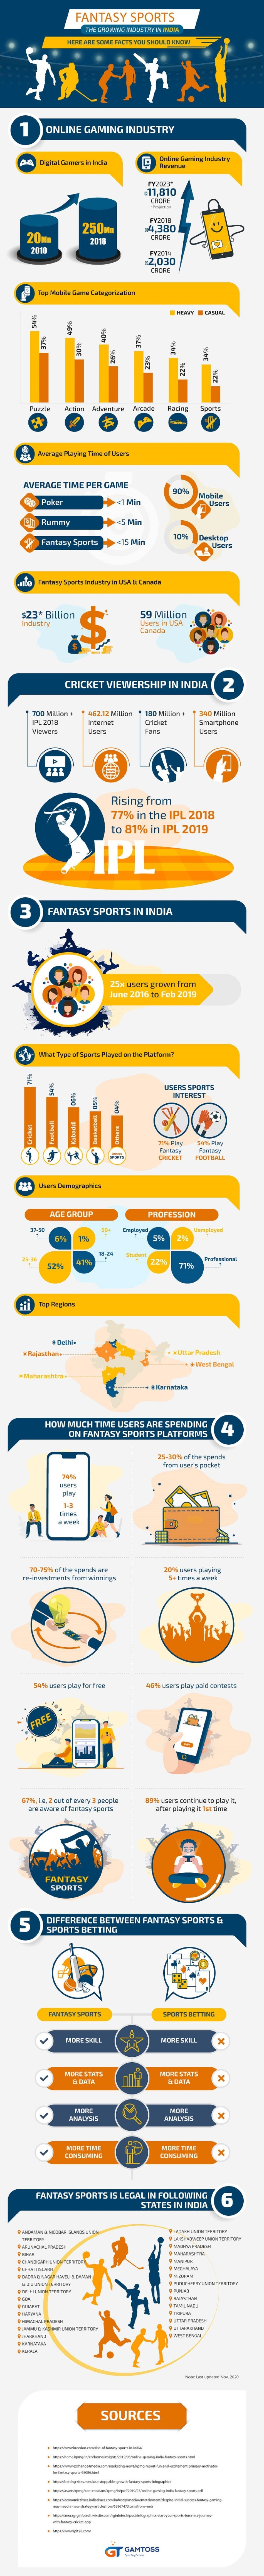 Fantasy Sports – Growing Industry in India #infographic